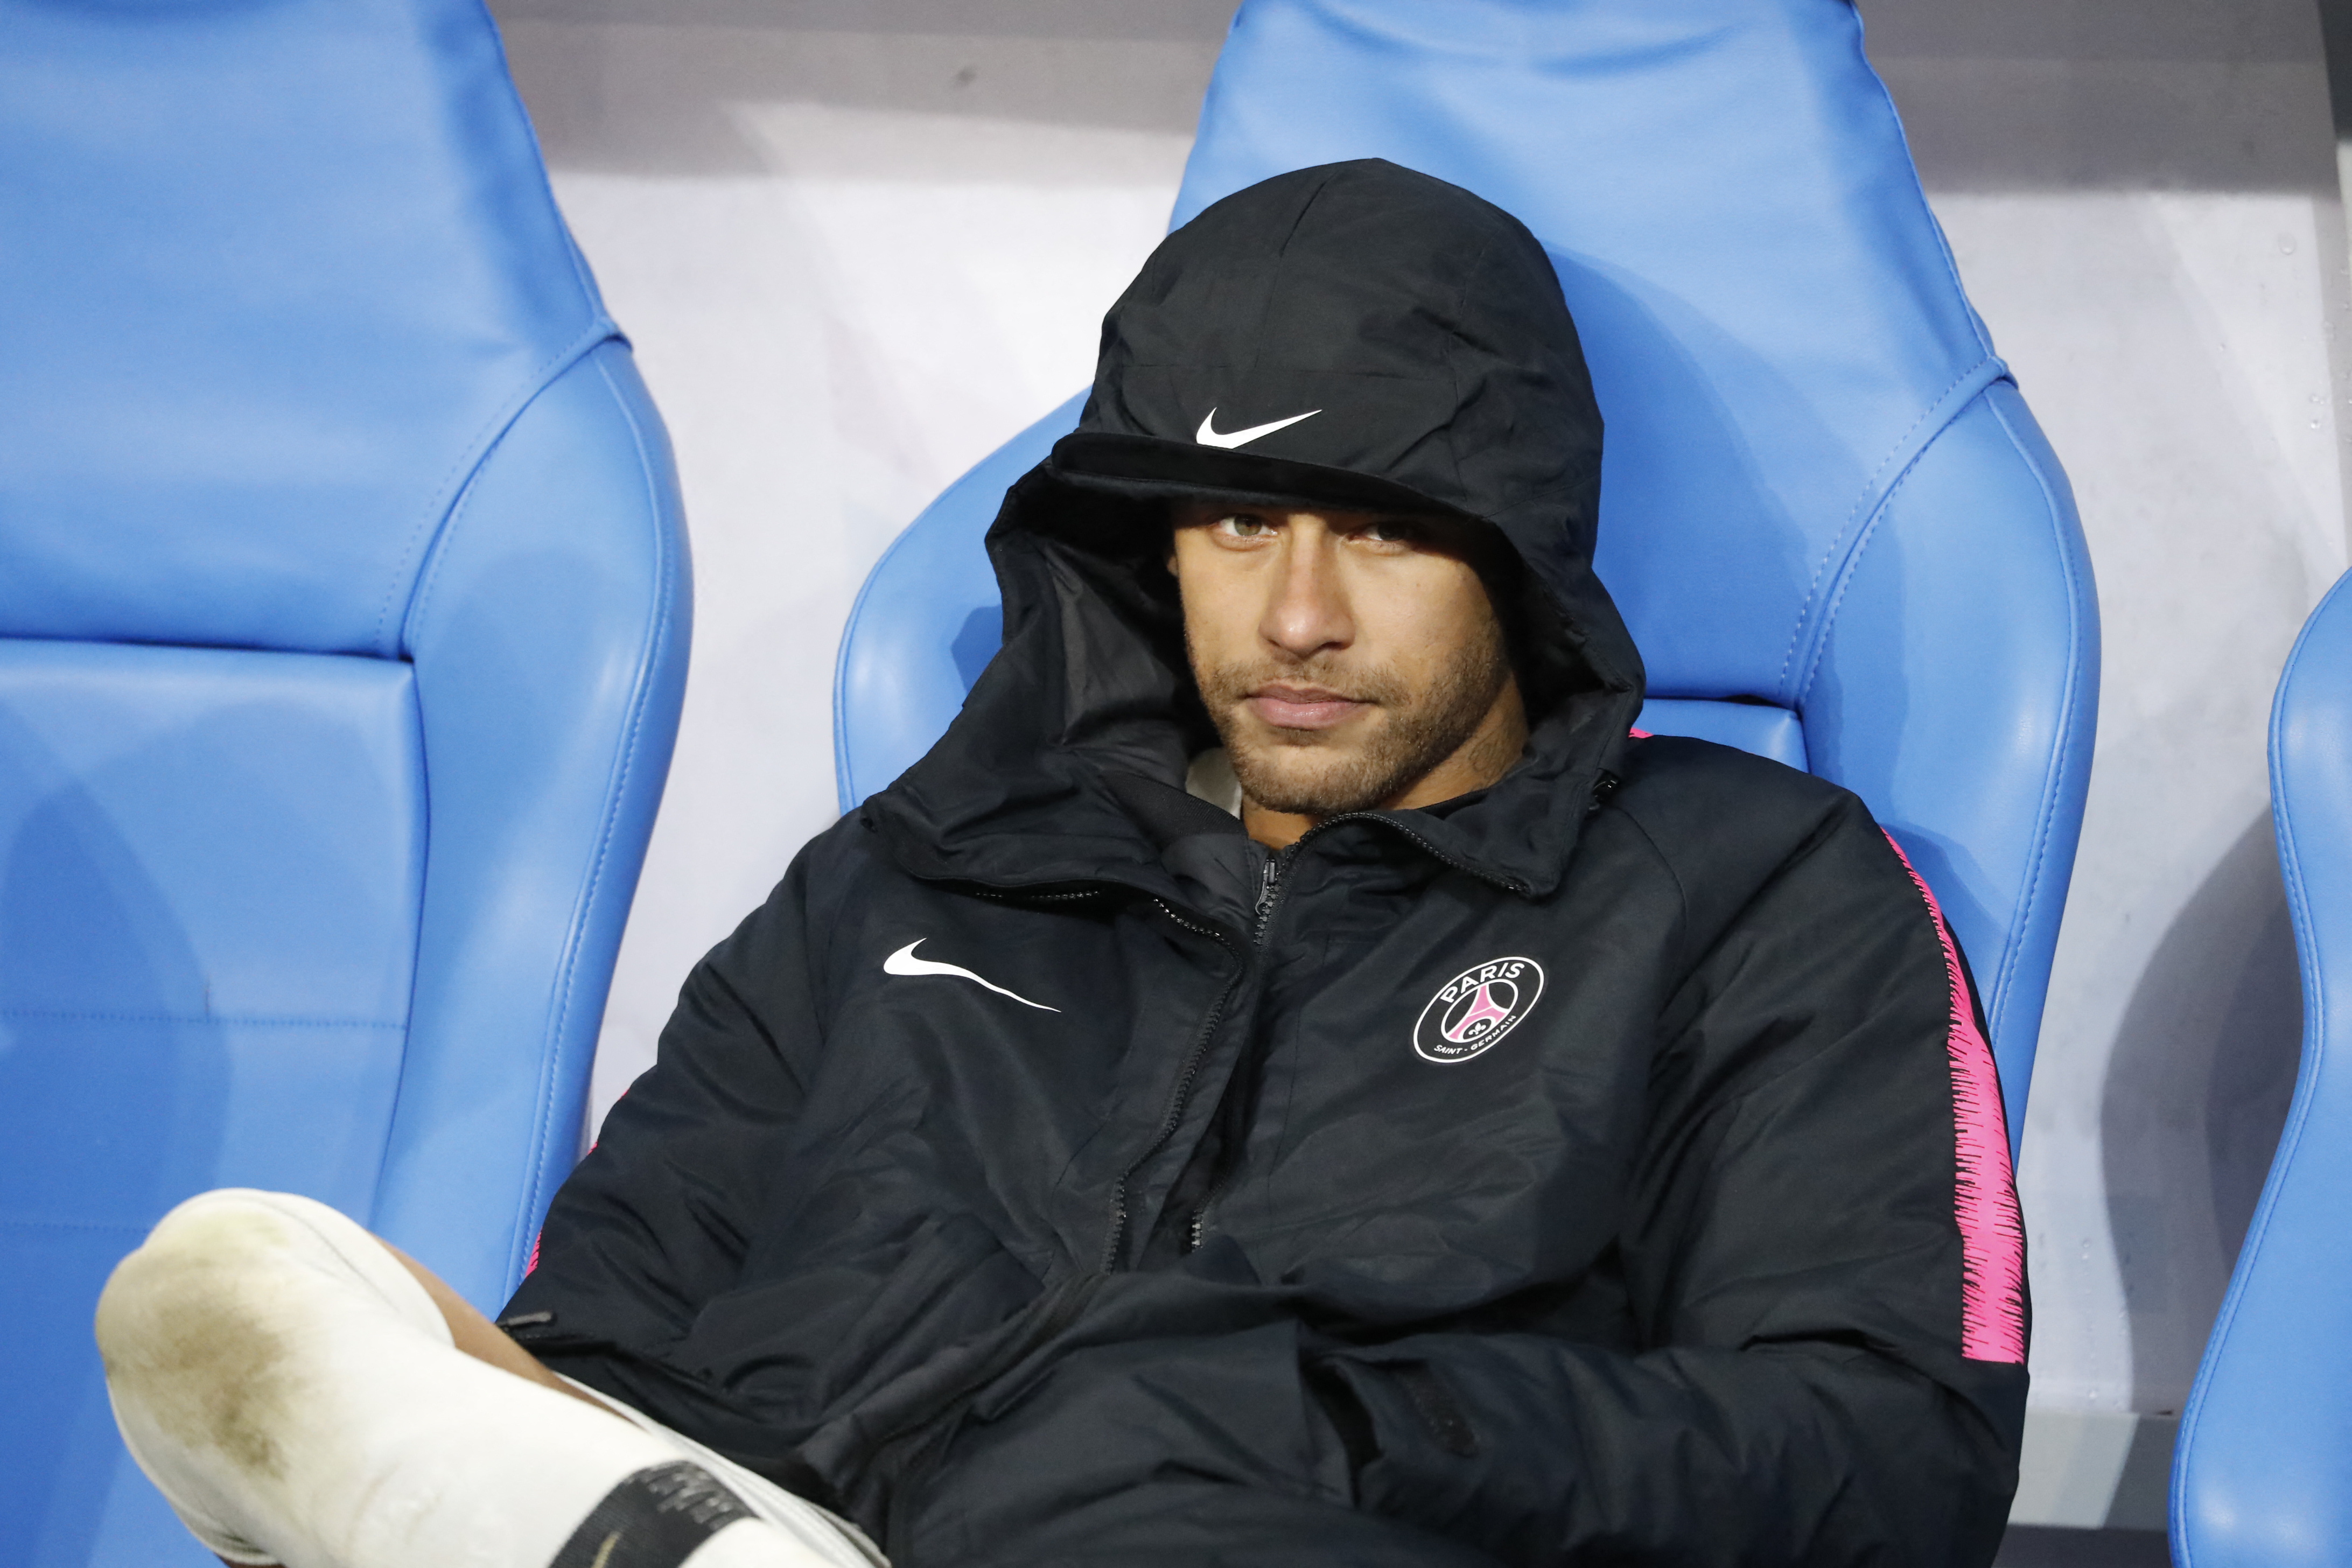 Neymar is ready to leave Paris according to reports. Image: PA Images